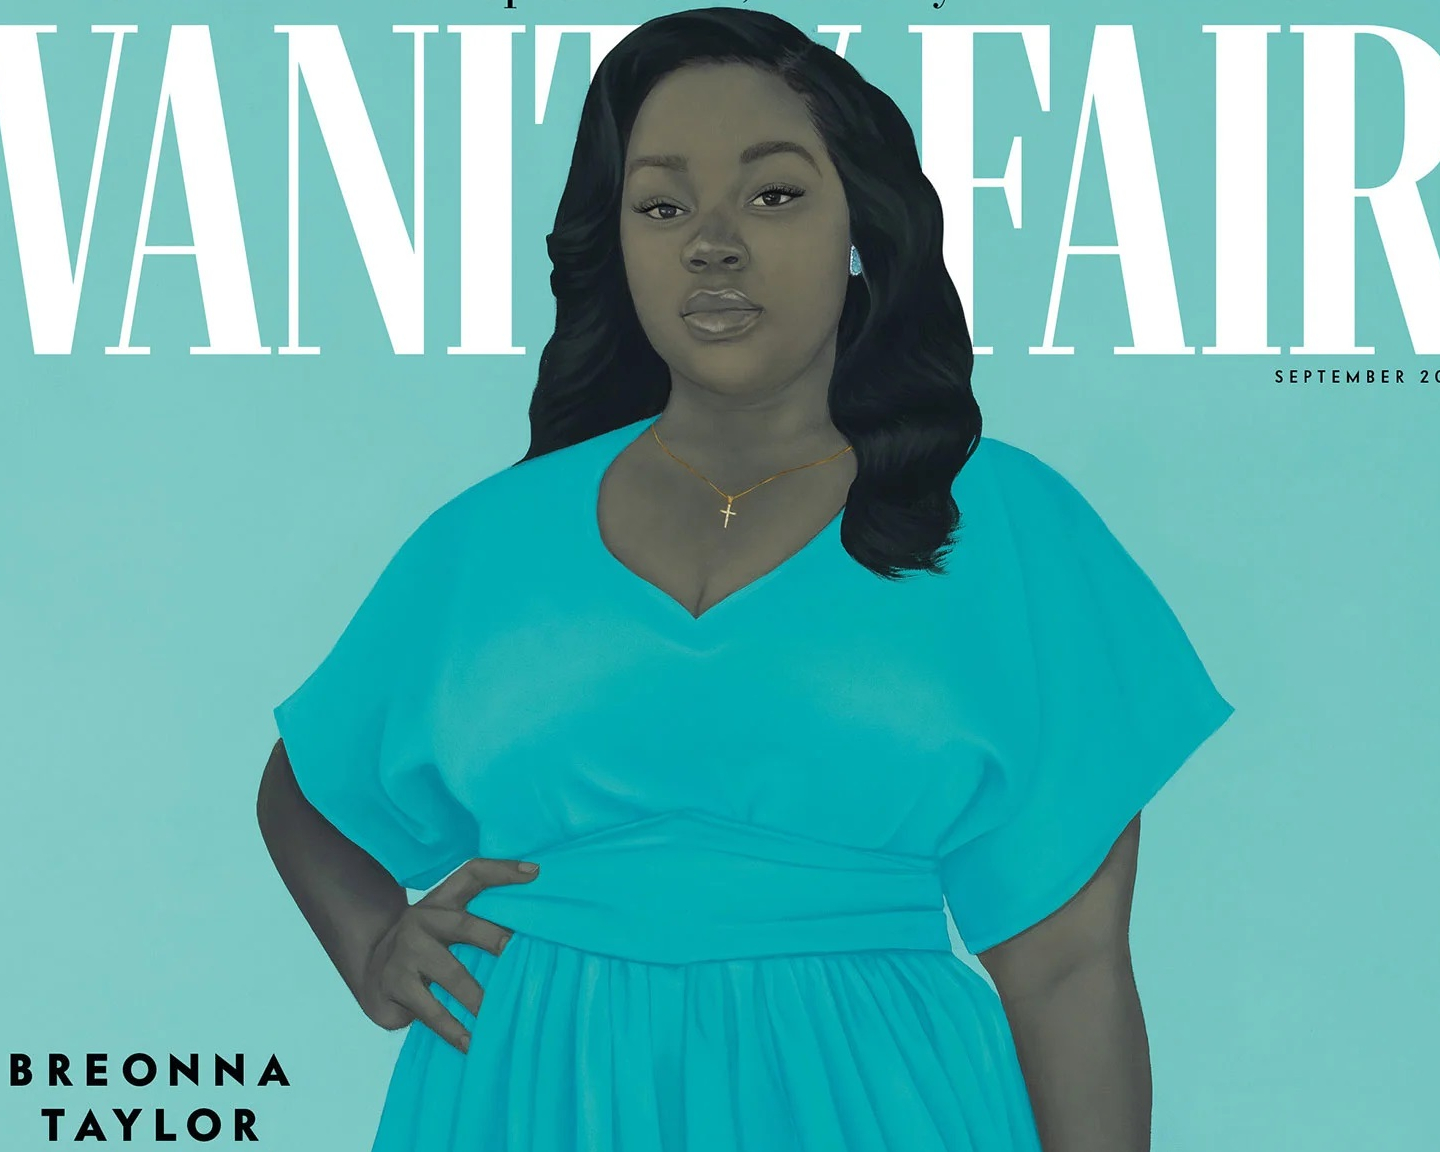 Breonna Taylor S Cover On Vanity Fair Is A Step But Will It Really Bring Change Houstonchronicle Com